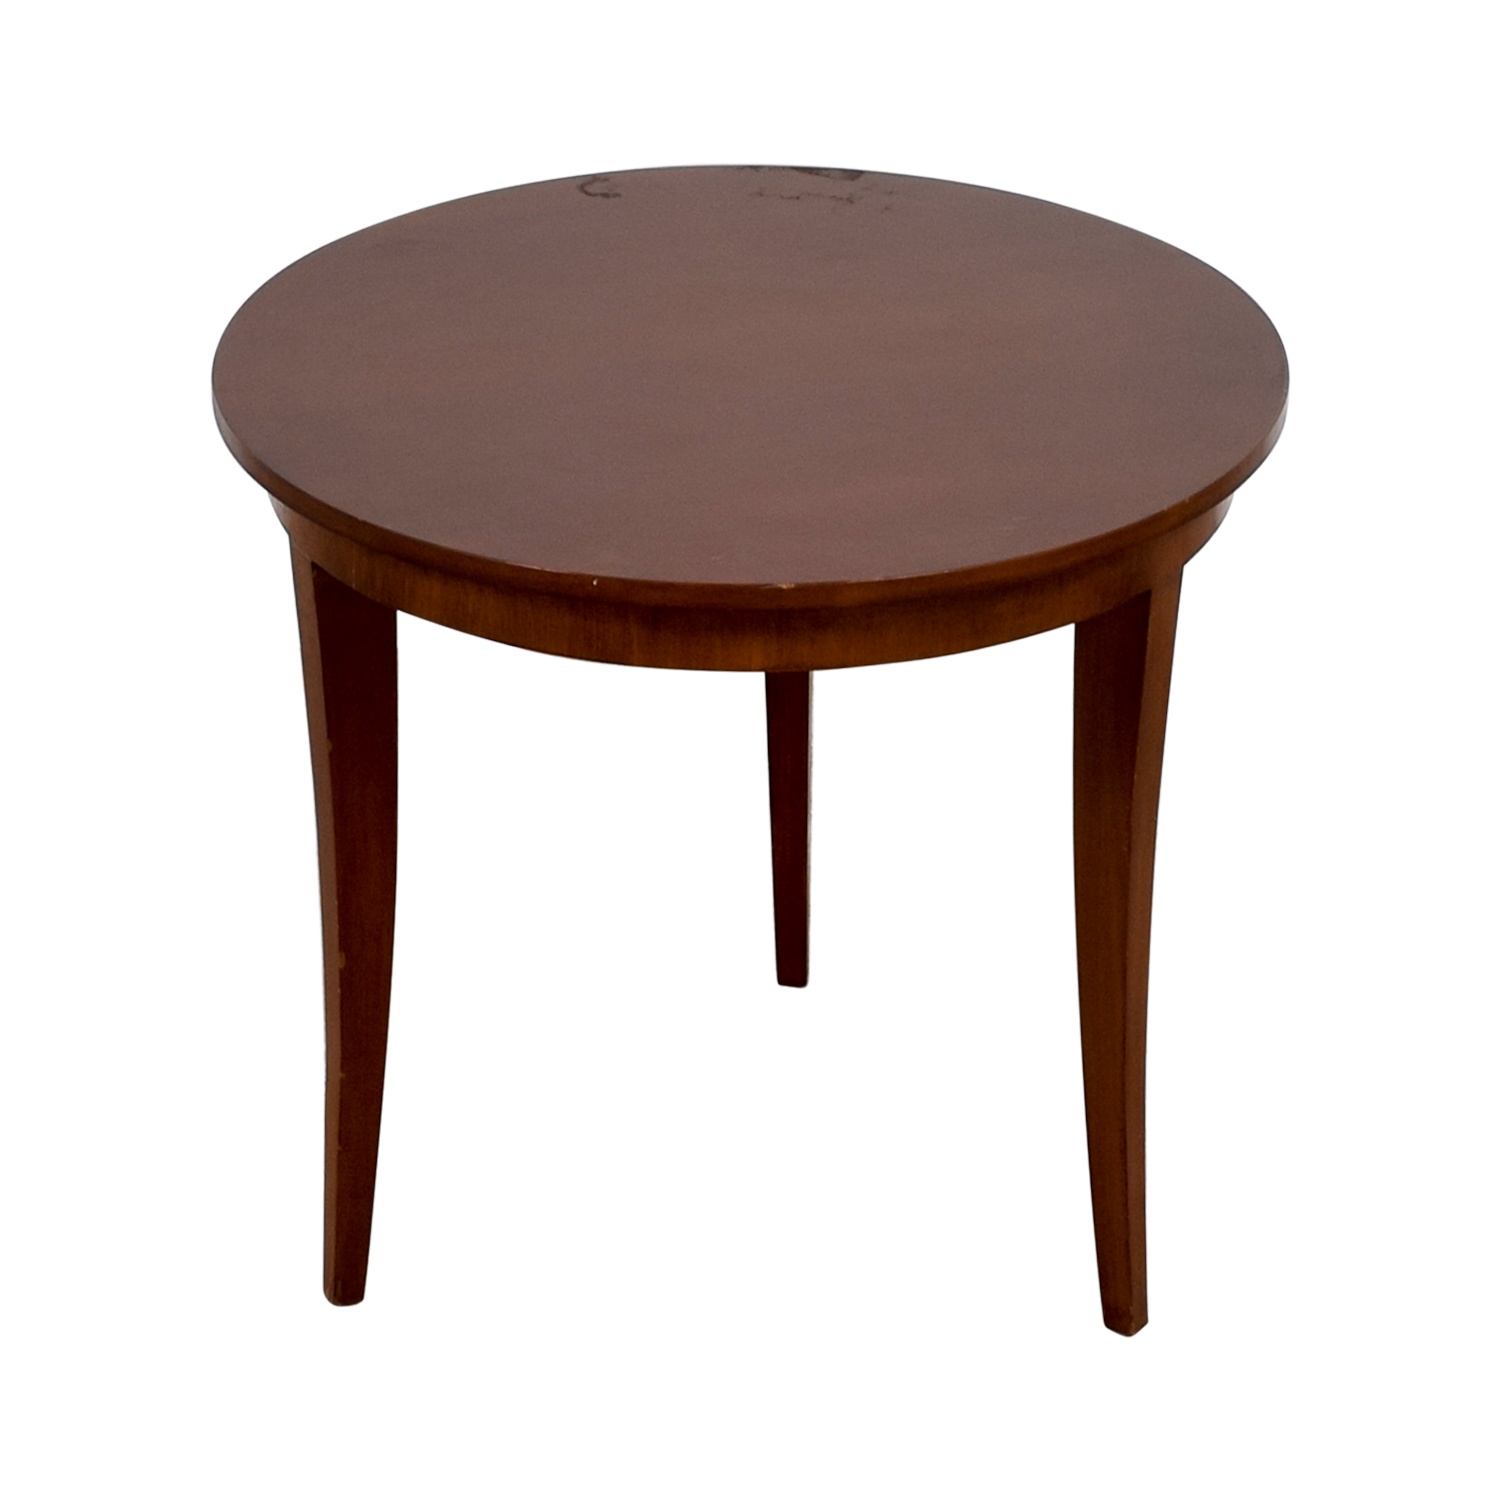 Furniture Masters Furniture Masters Round Wood End Table on sale